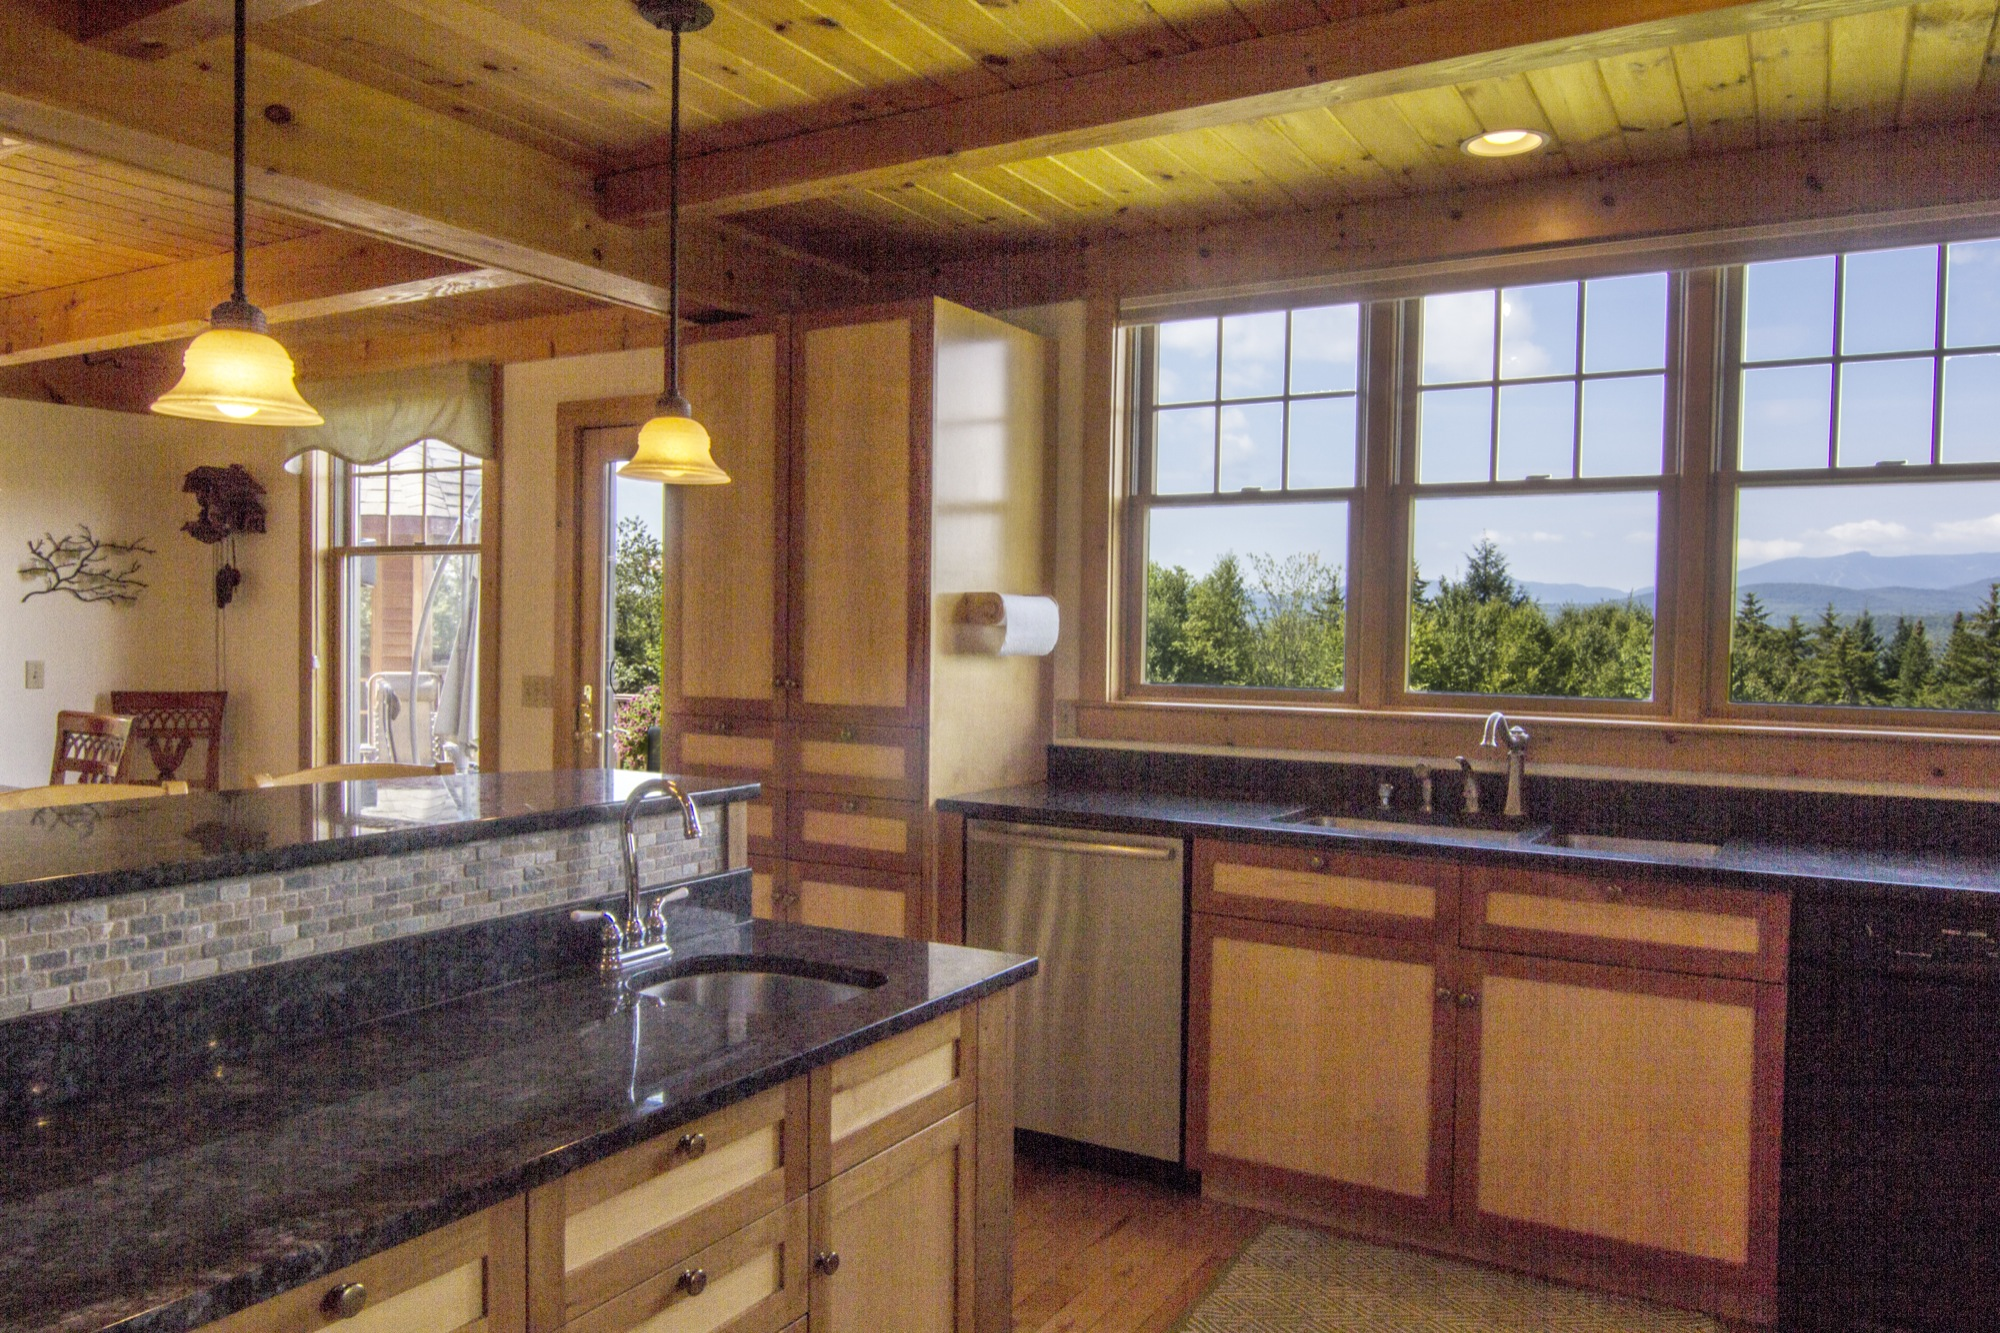 314 Campbell Rd - Kitchen.jpg